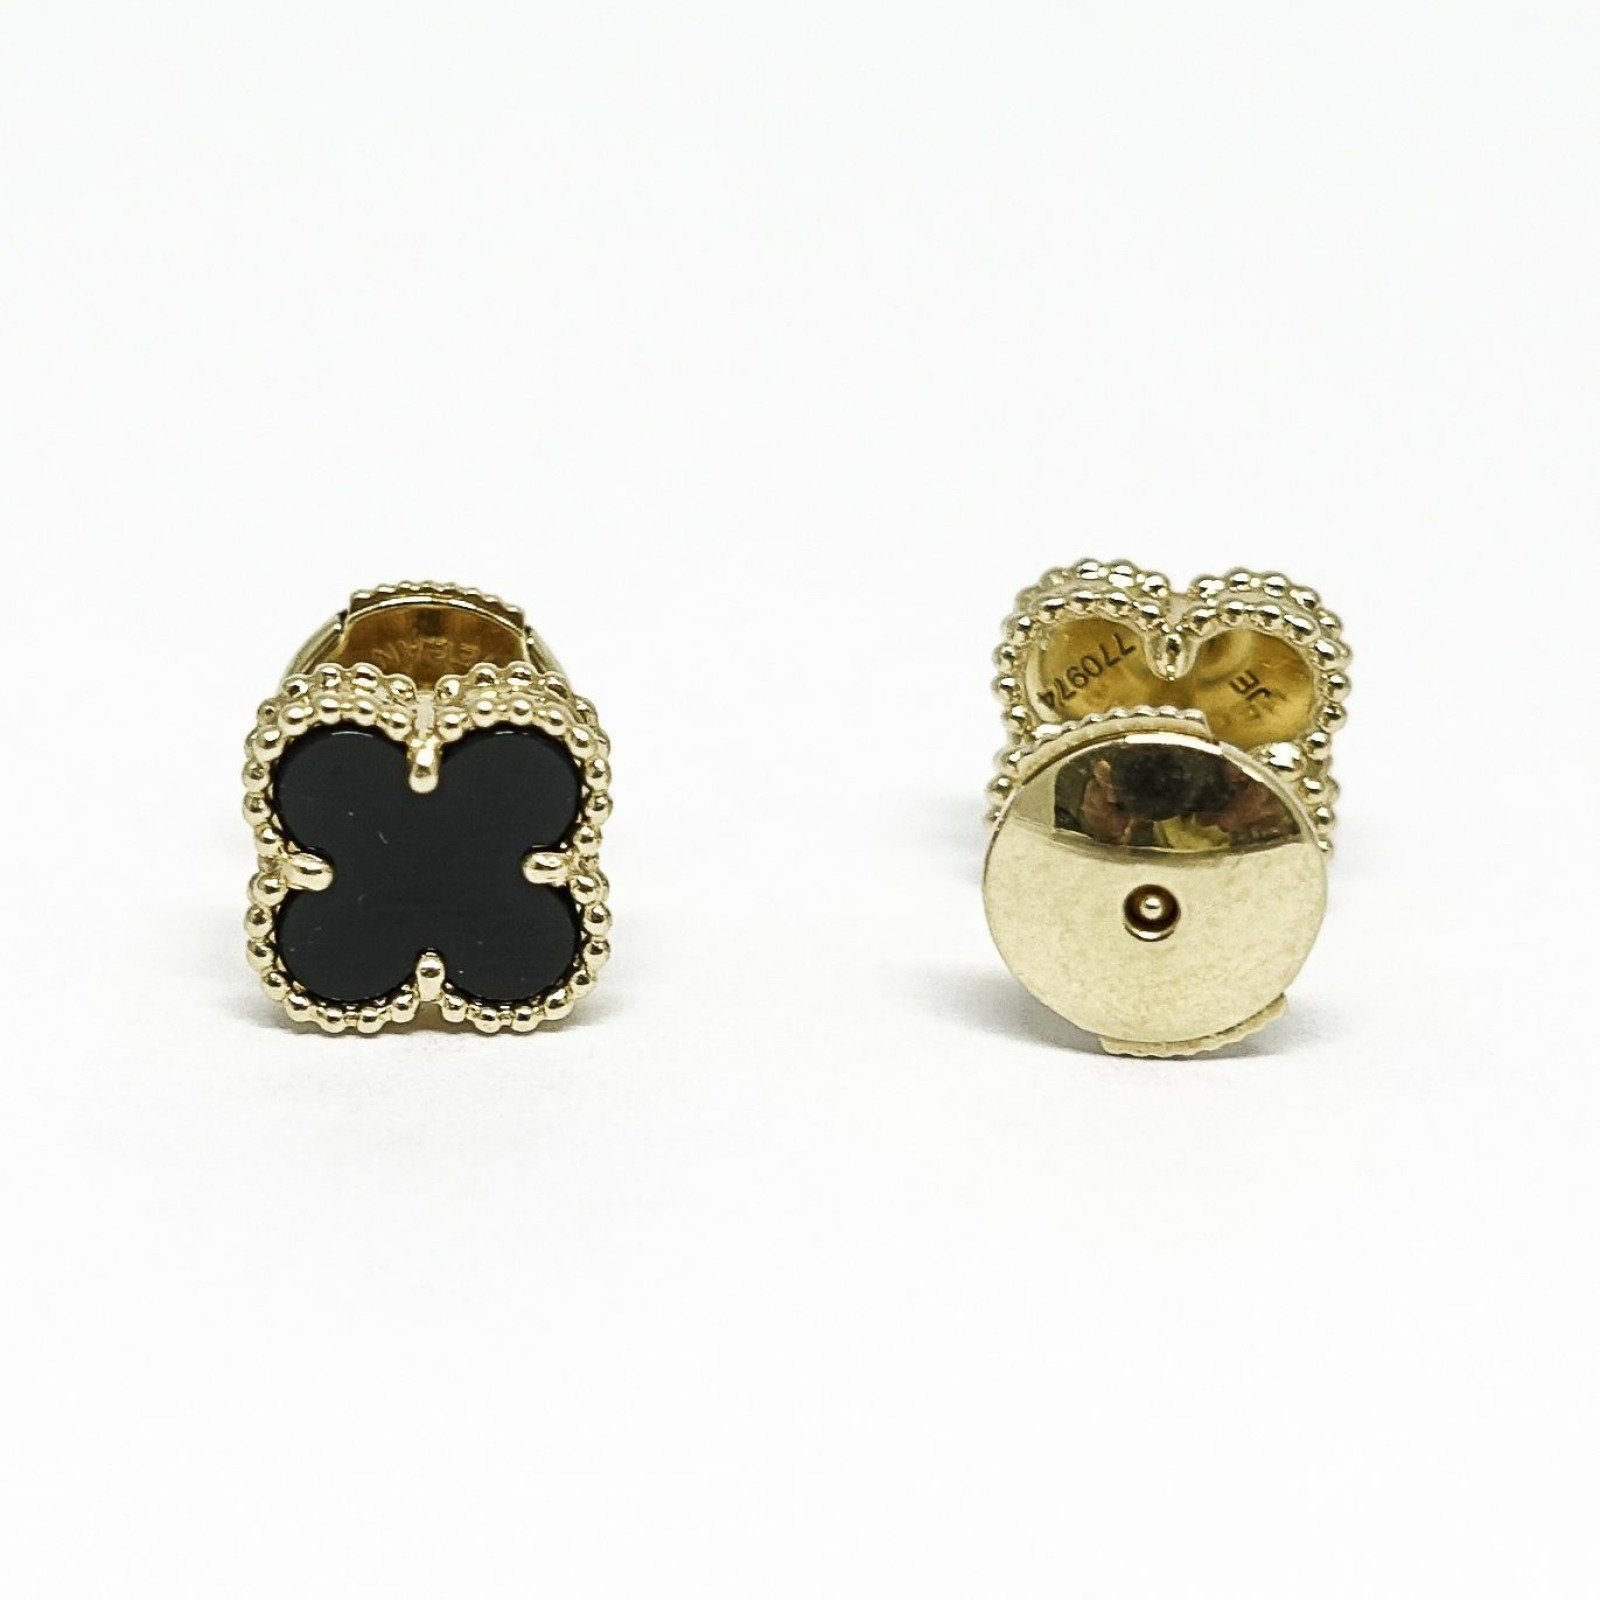 81637a7dcab2 Van Cleef   Arpels Vintage Alhambra Earrings - Oliver Jewellery